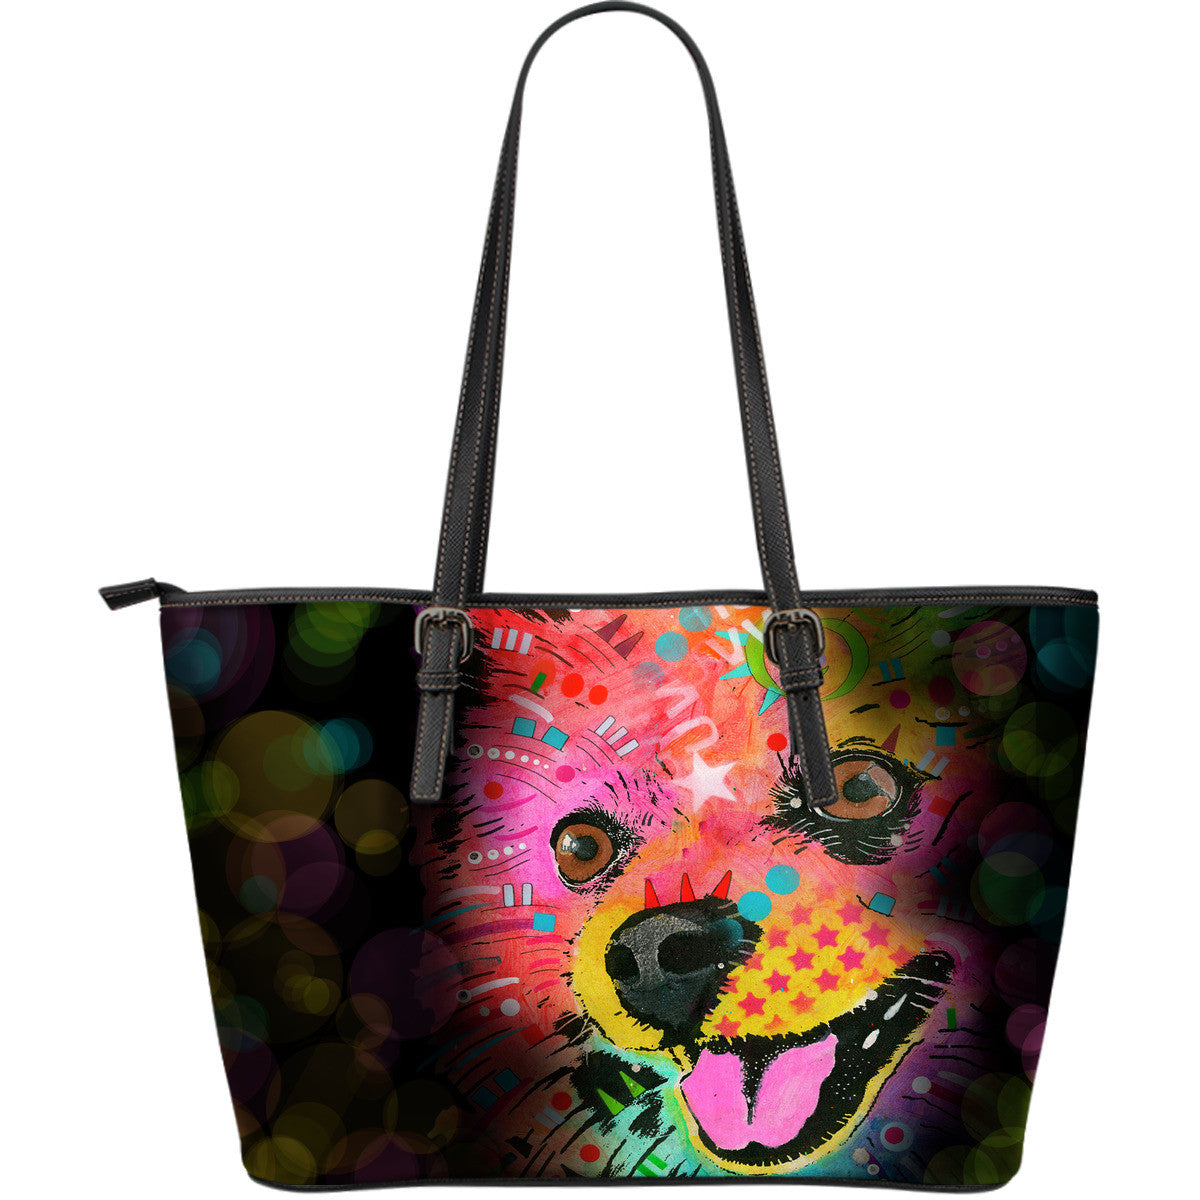 Pomeranian Leather Tote Bags (Large)